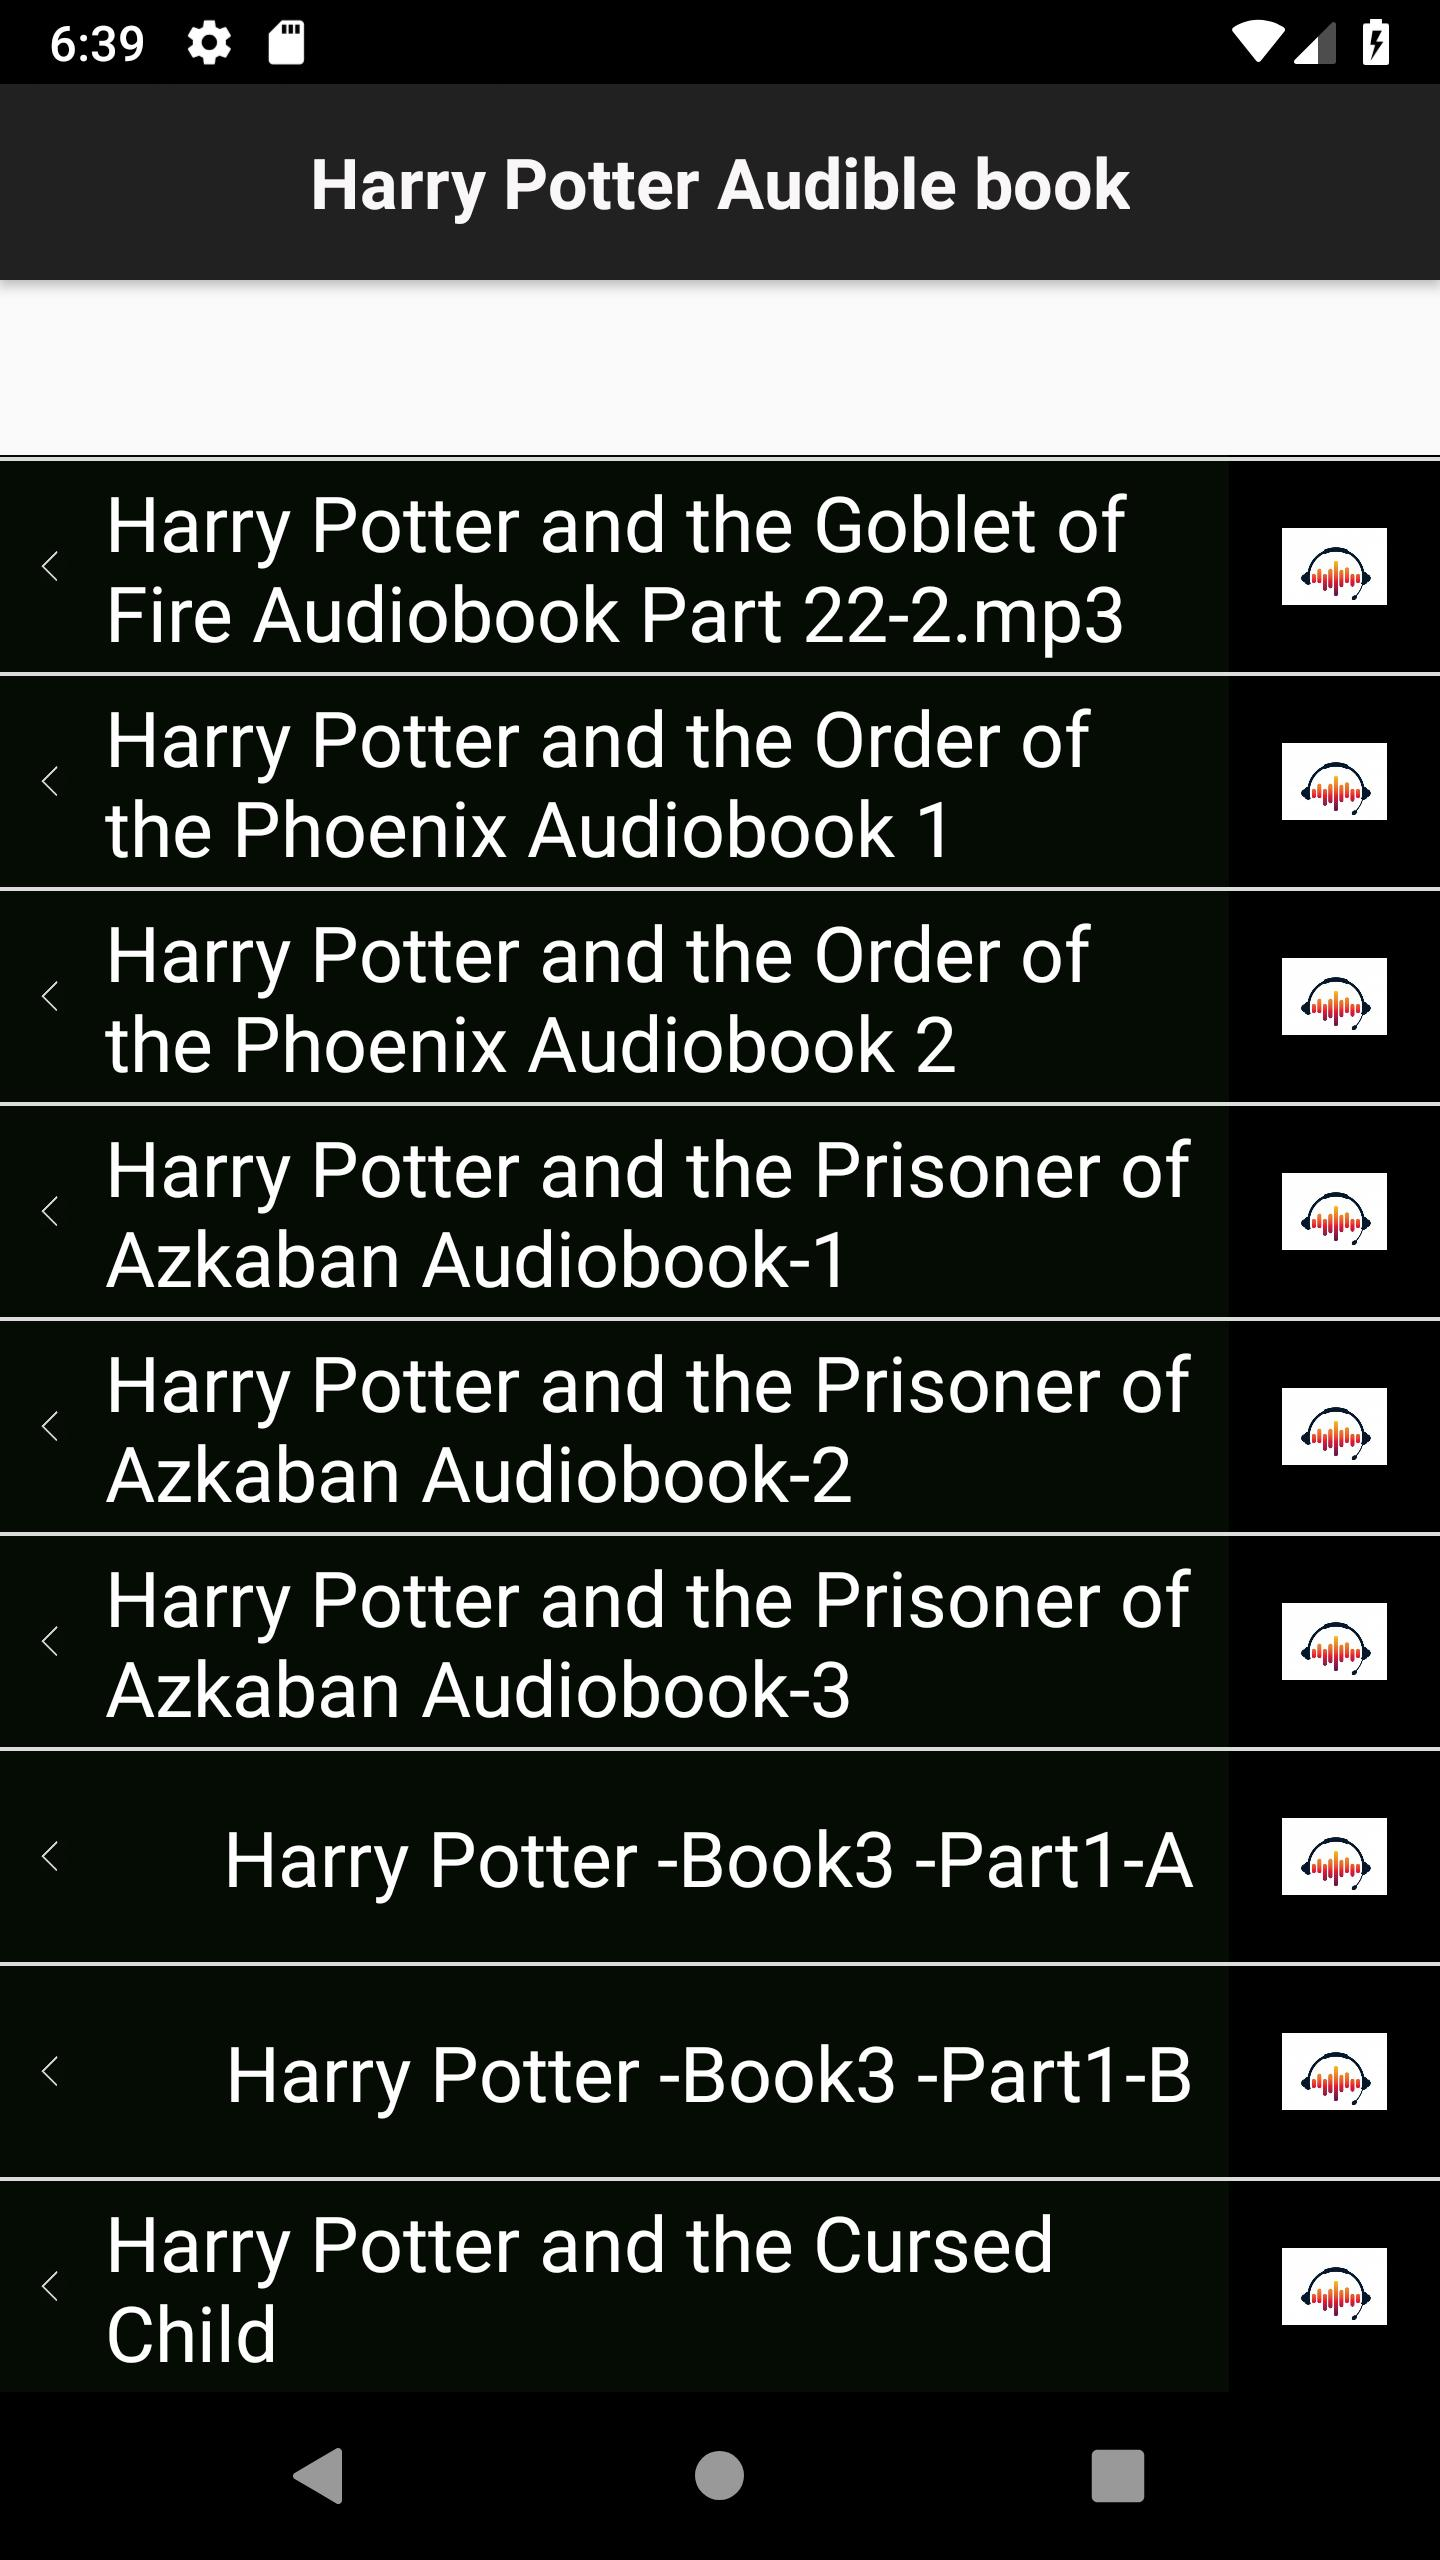 Audible-Books : Harry Potter for Android - APK Download